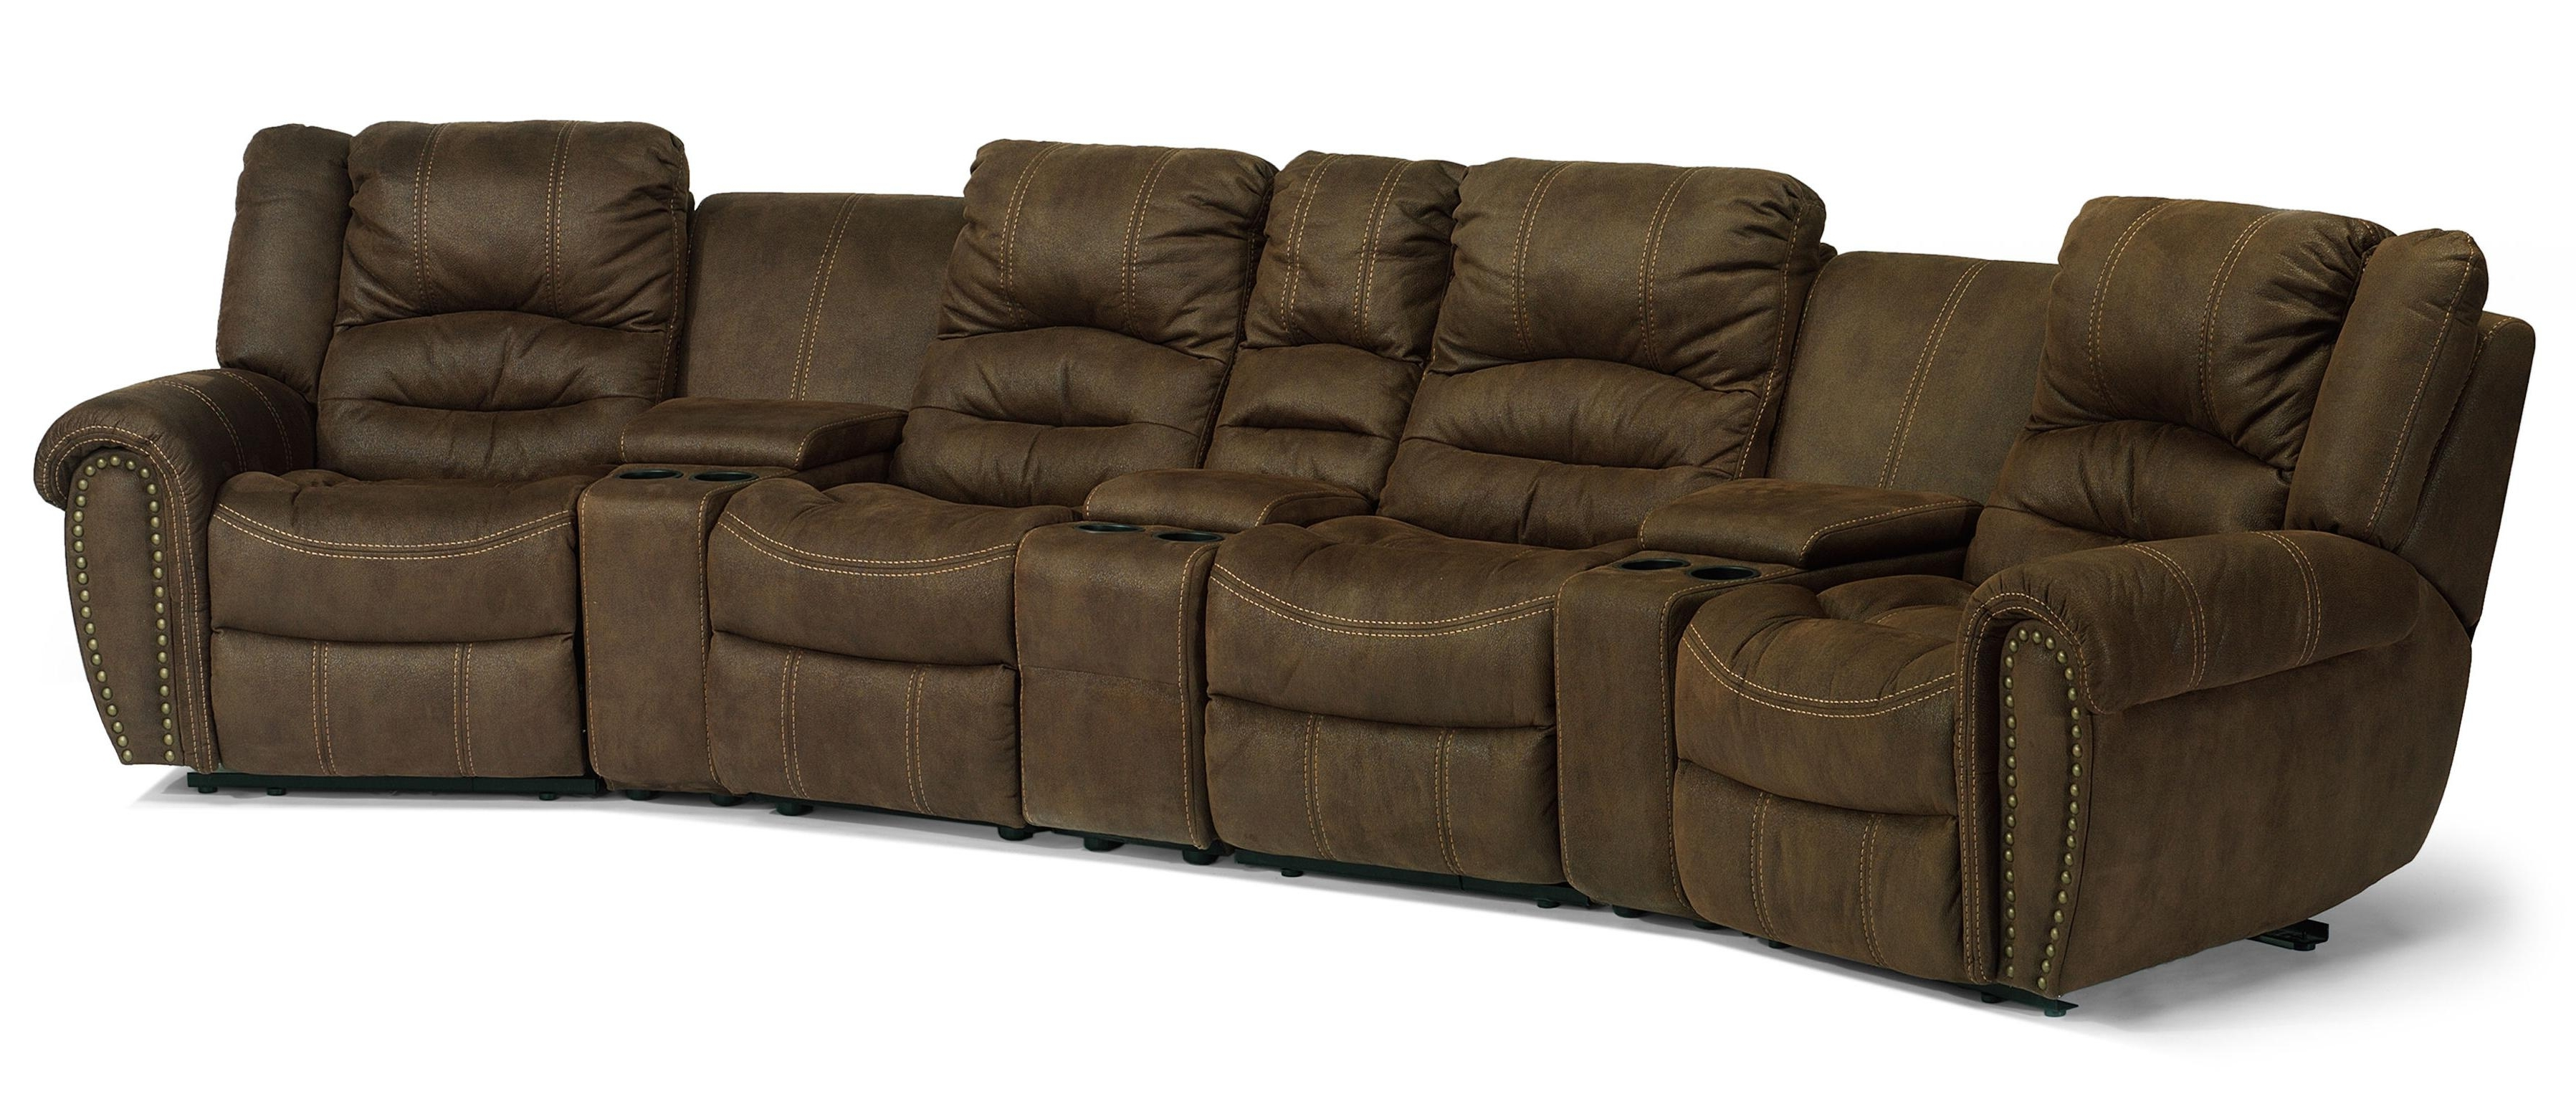 Most Popular Flexsteel Latitudes – New Town Curved Reclining Sectional Sofa Pertaining To Visalia Ca Sectional Sofas (View 11 of 20)